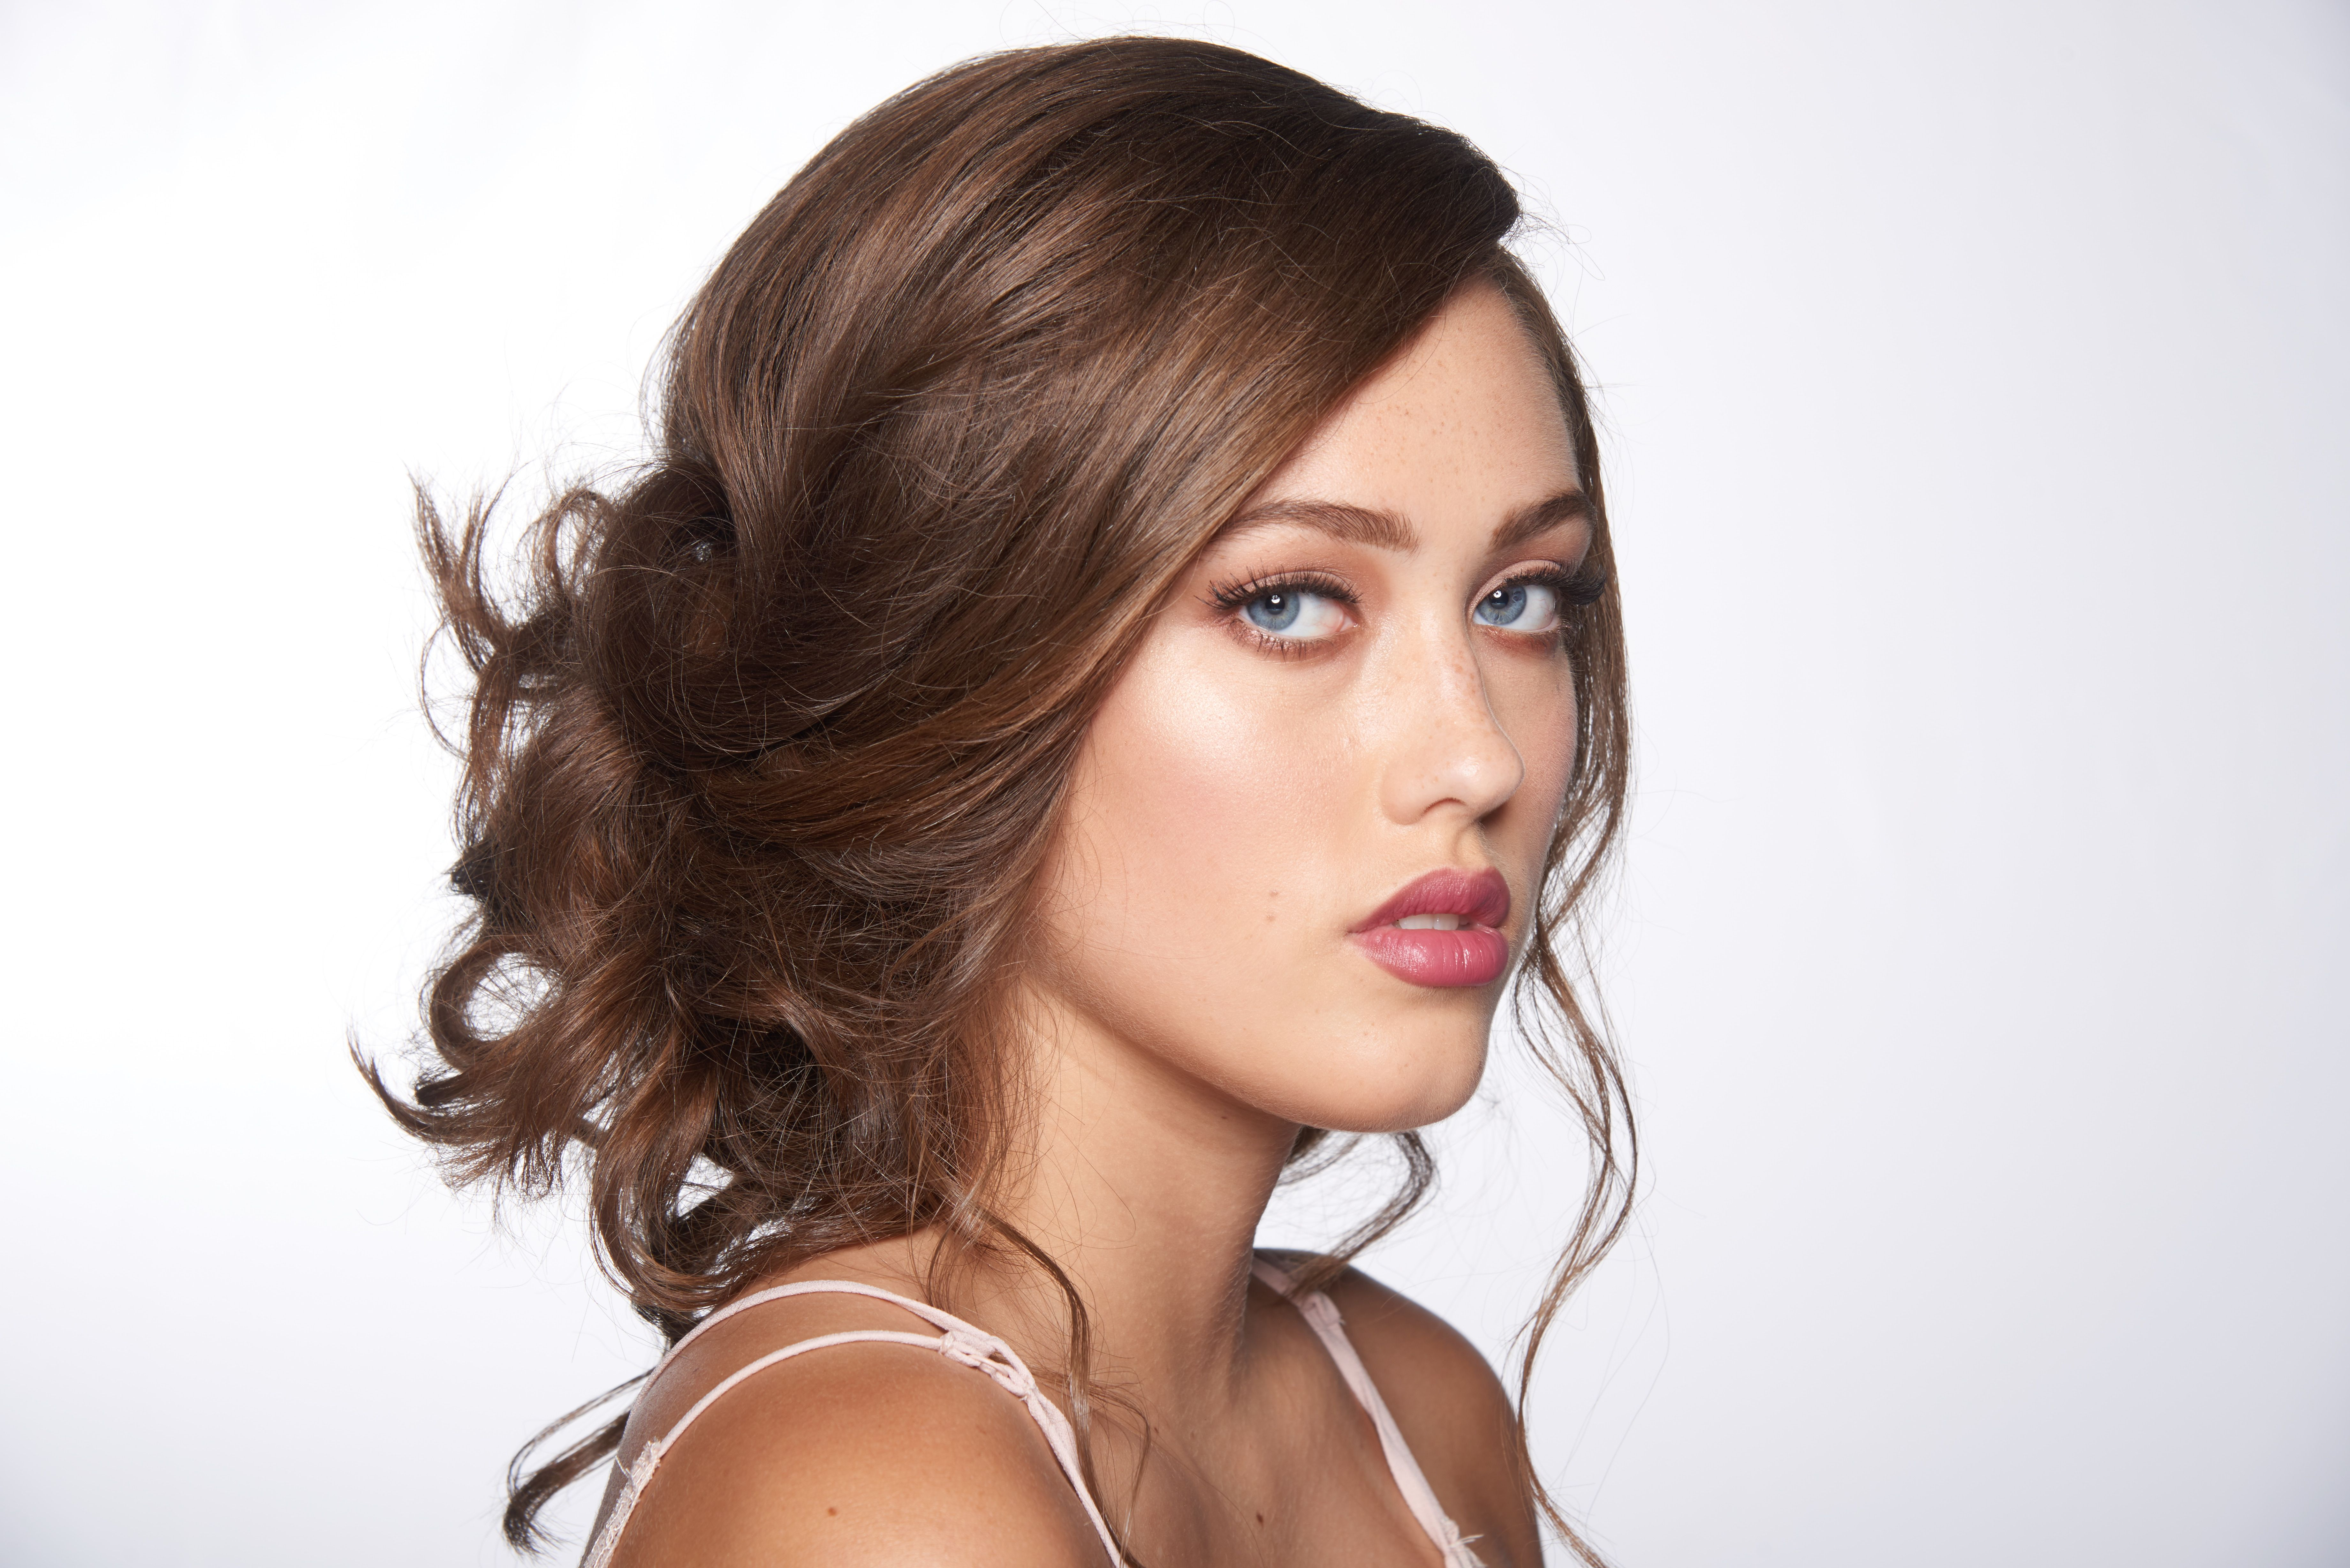 Pin by Tress Hairstyling Company on Soft & Romantic Styles